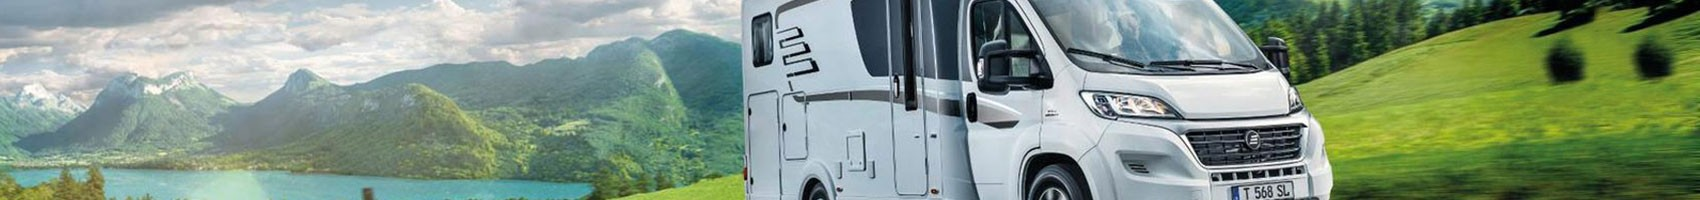 Autotrail Motorhomes For Sale UK